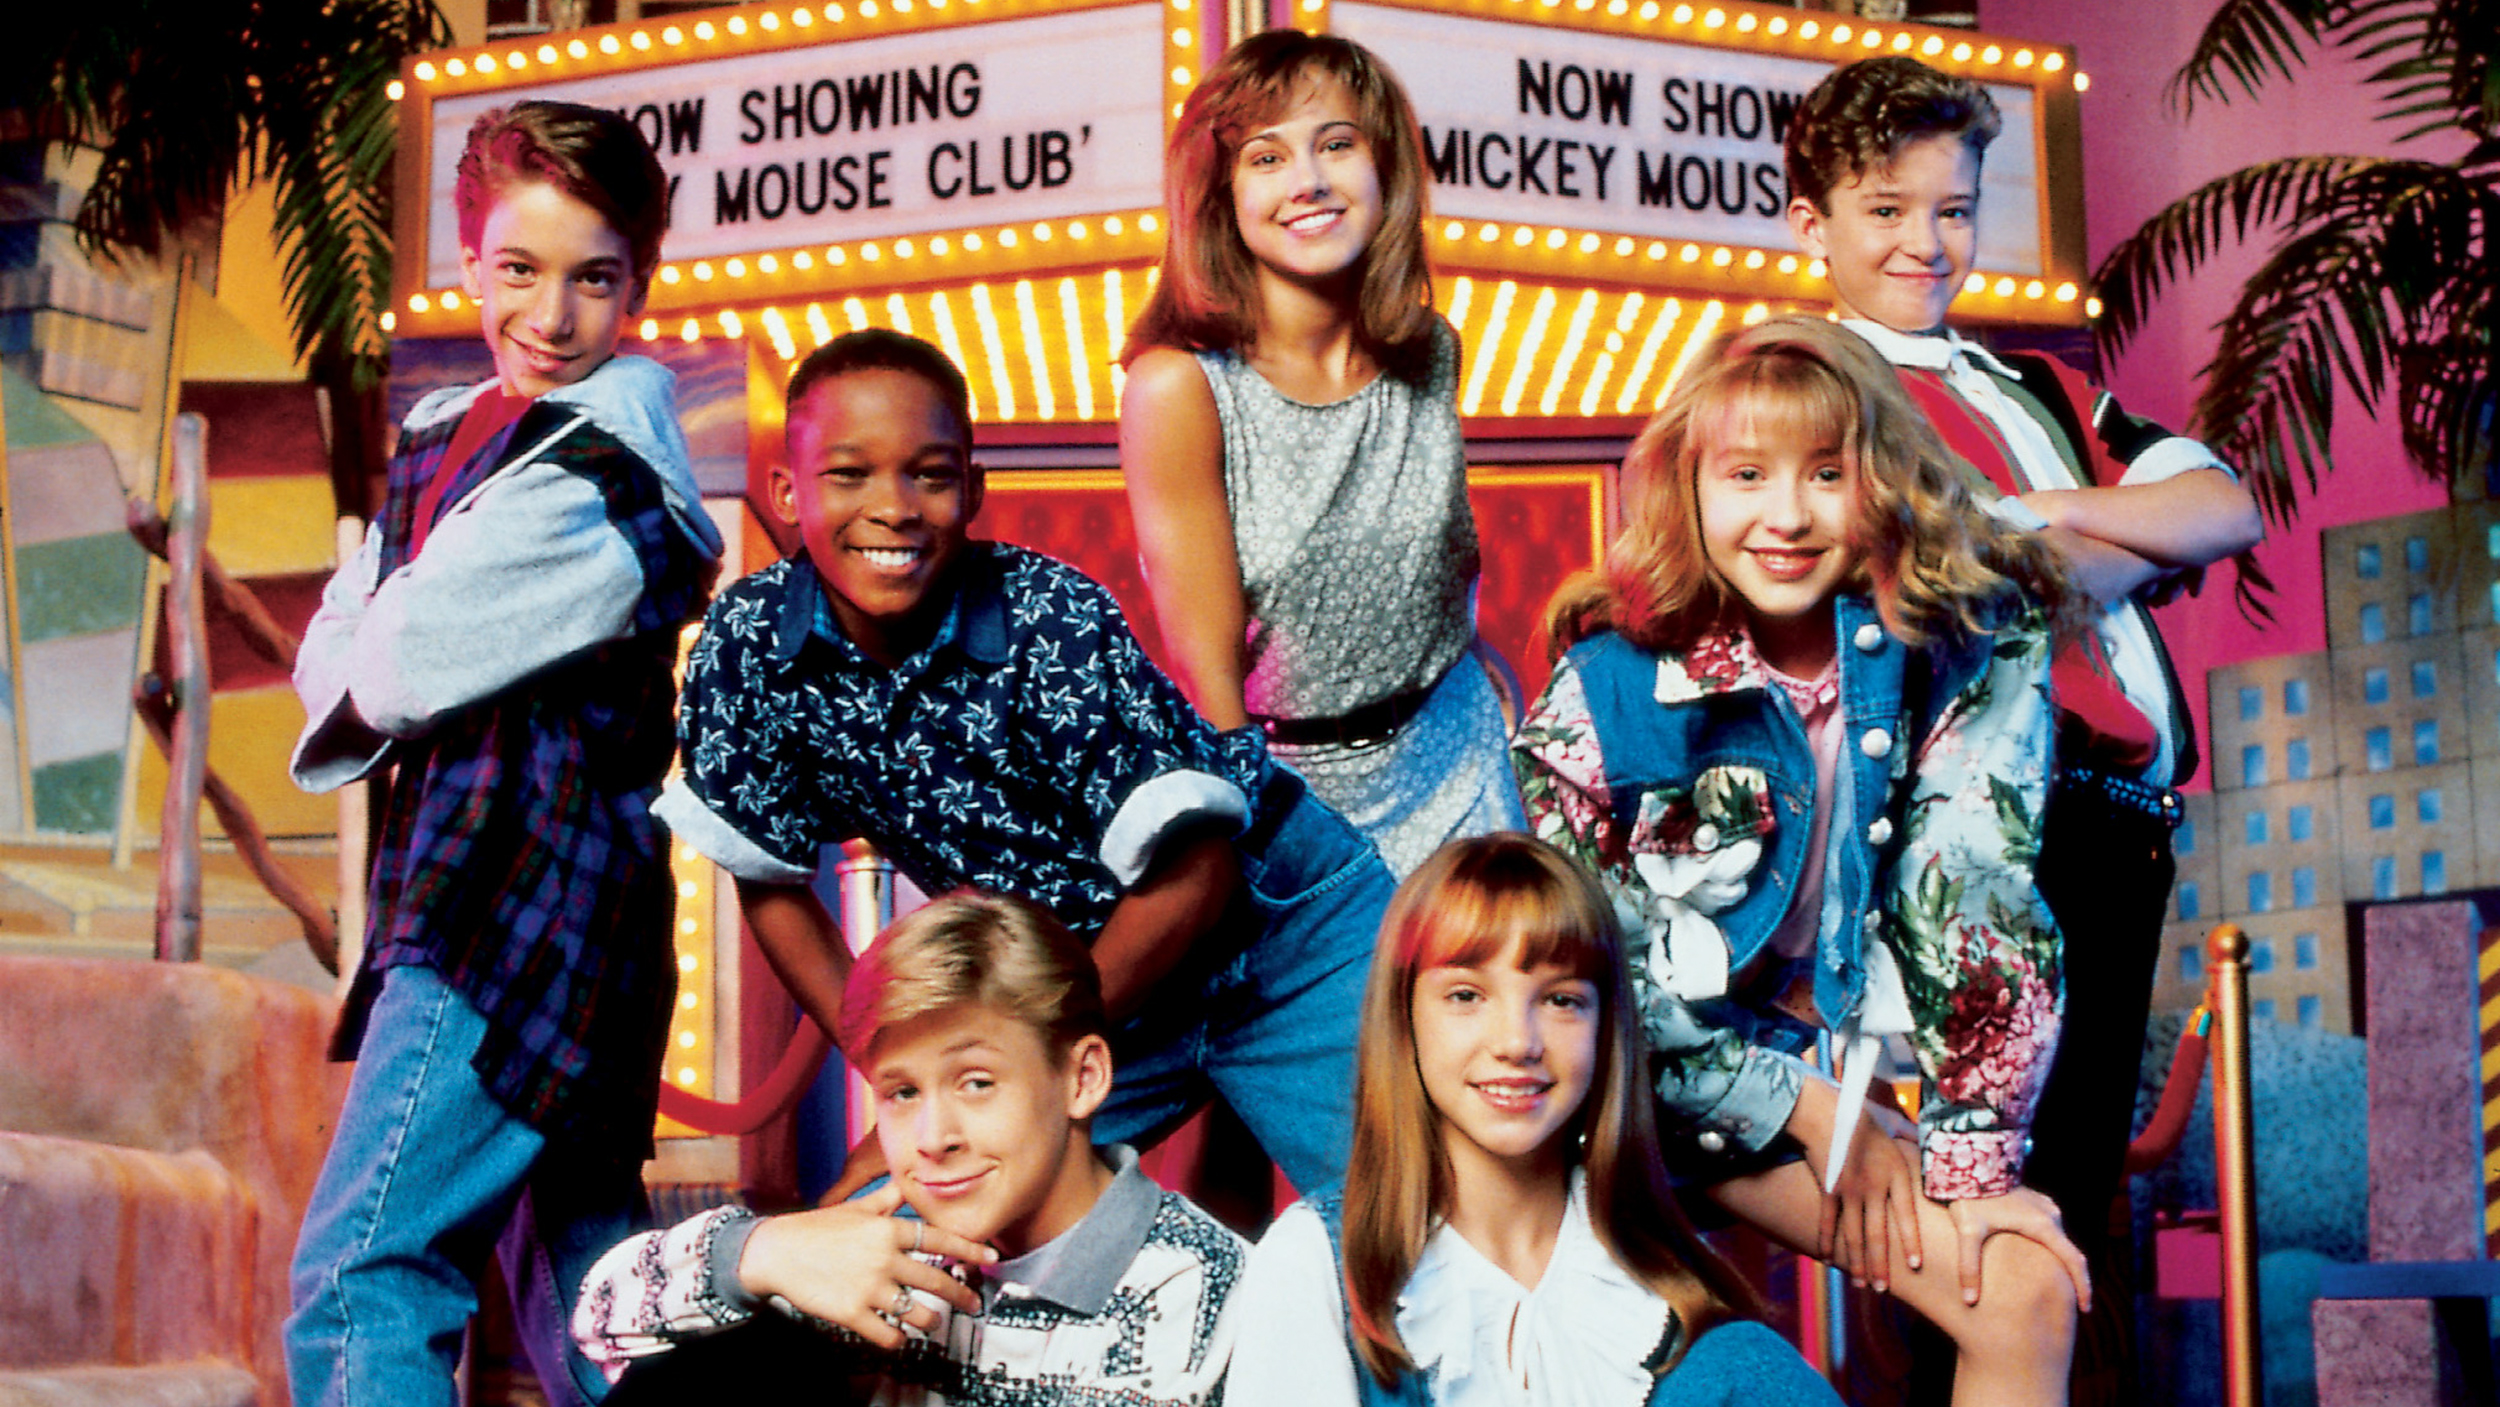 Britney Spears is 'definitely' down for a 'Mickey Mouse Club' reunion